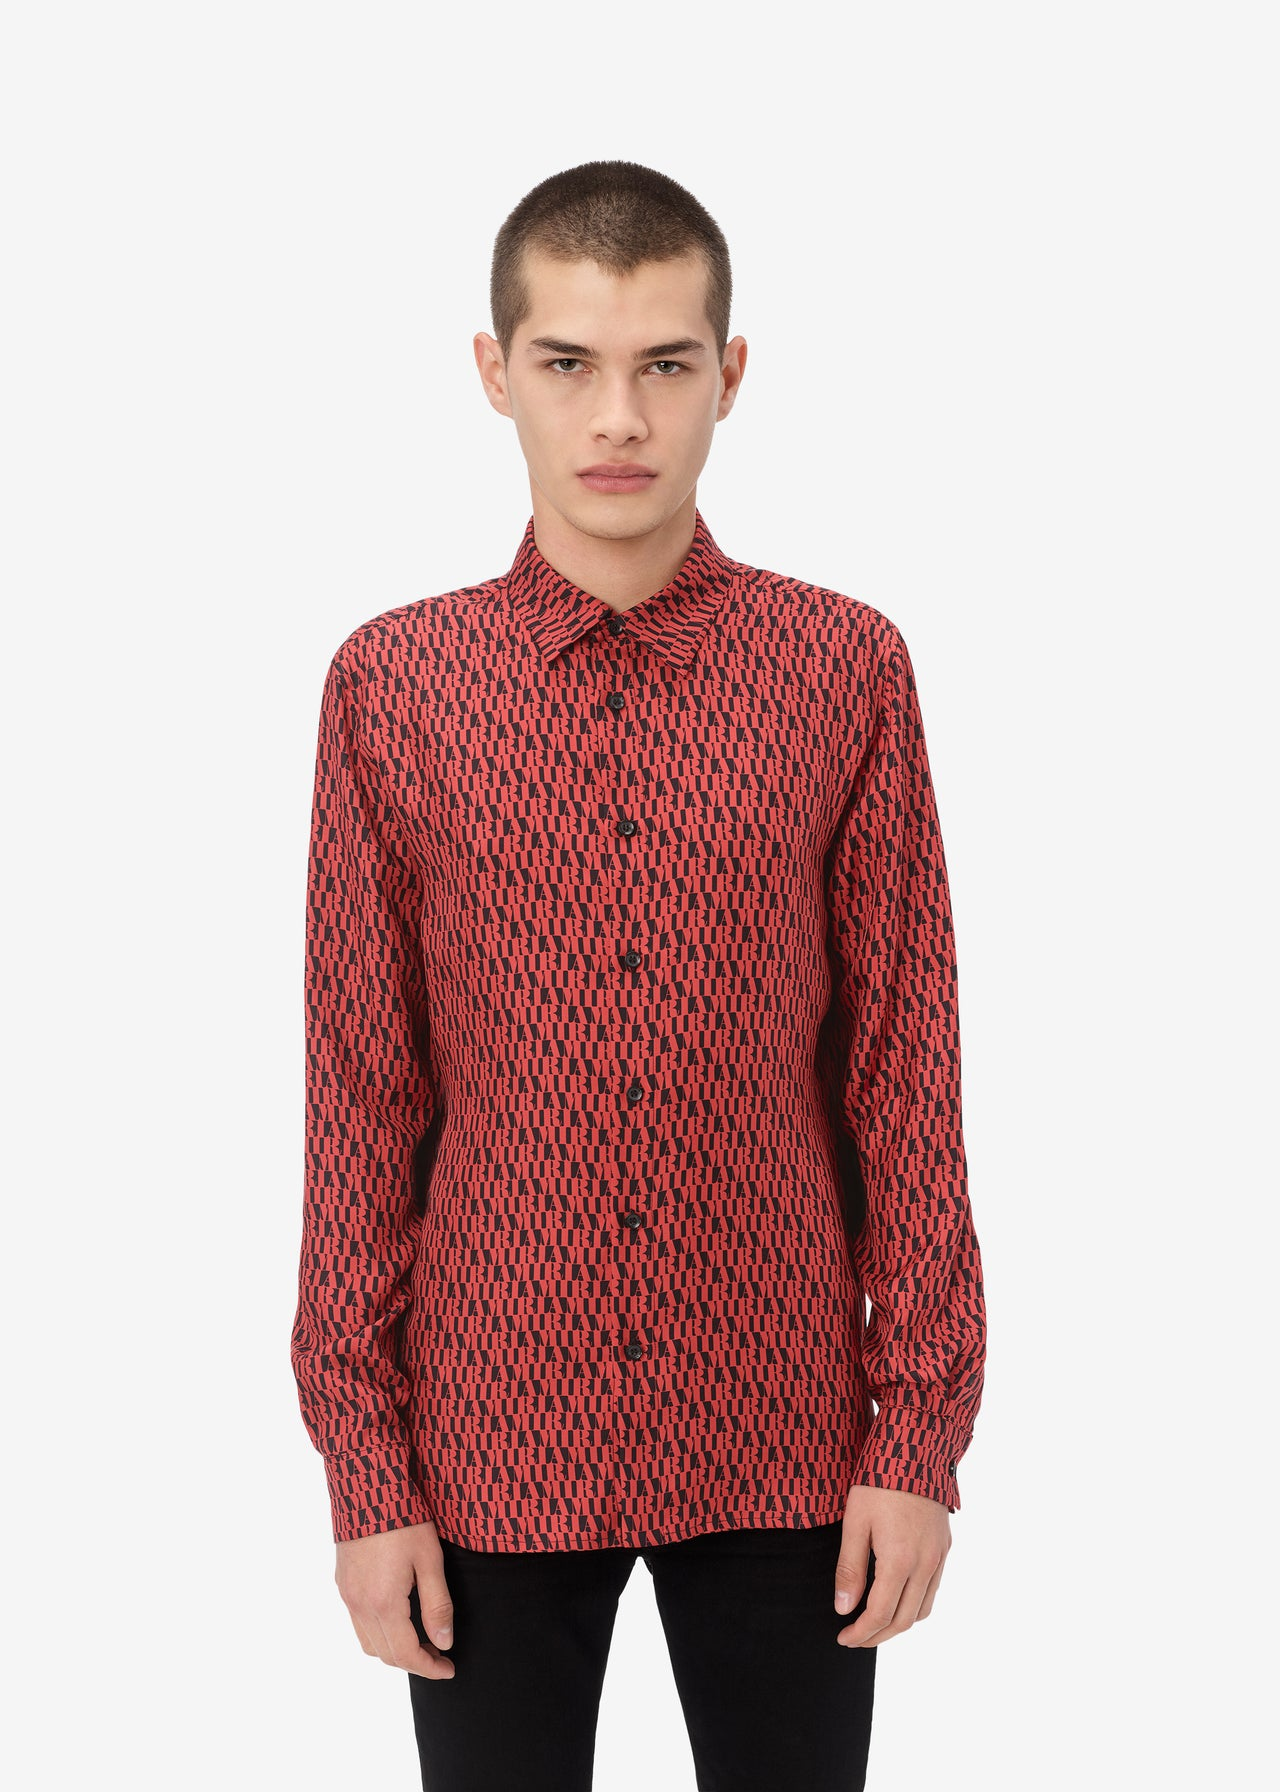 AMIRI ALL OVER LONG SLEEVE SHIRT - BLACK / RED